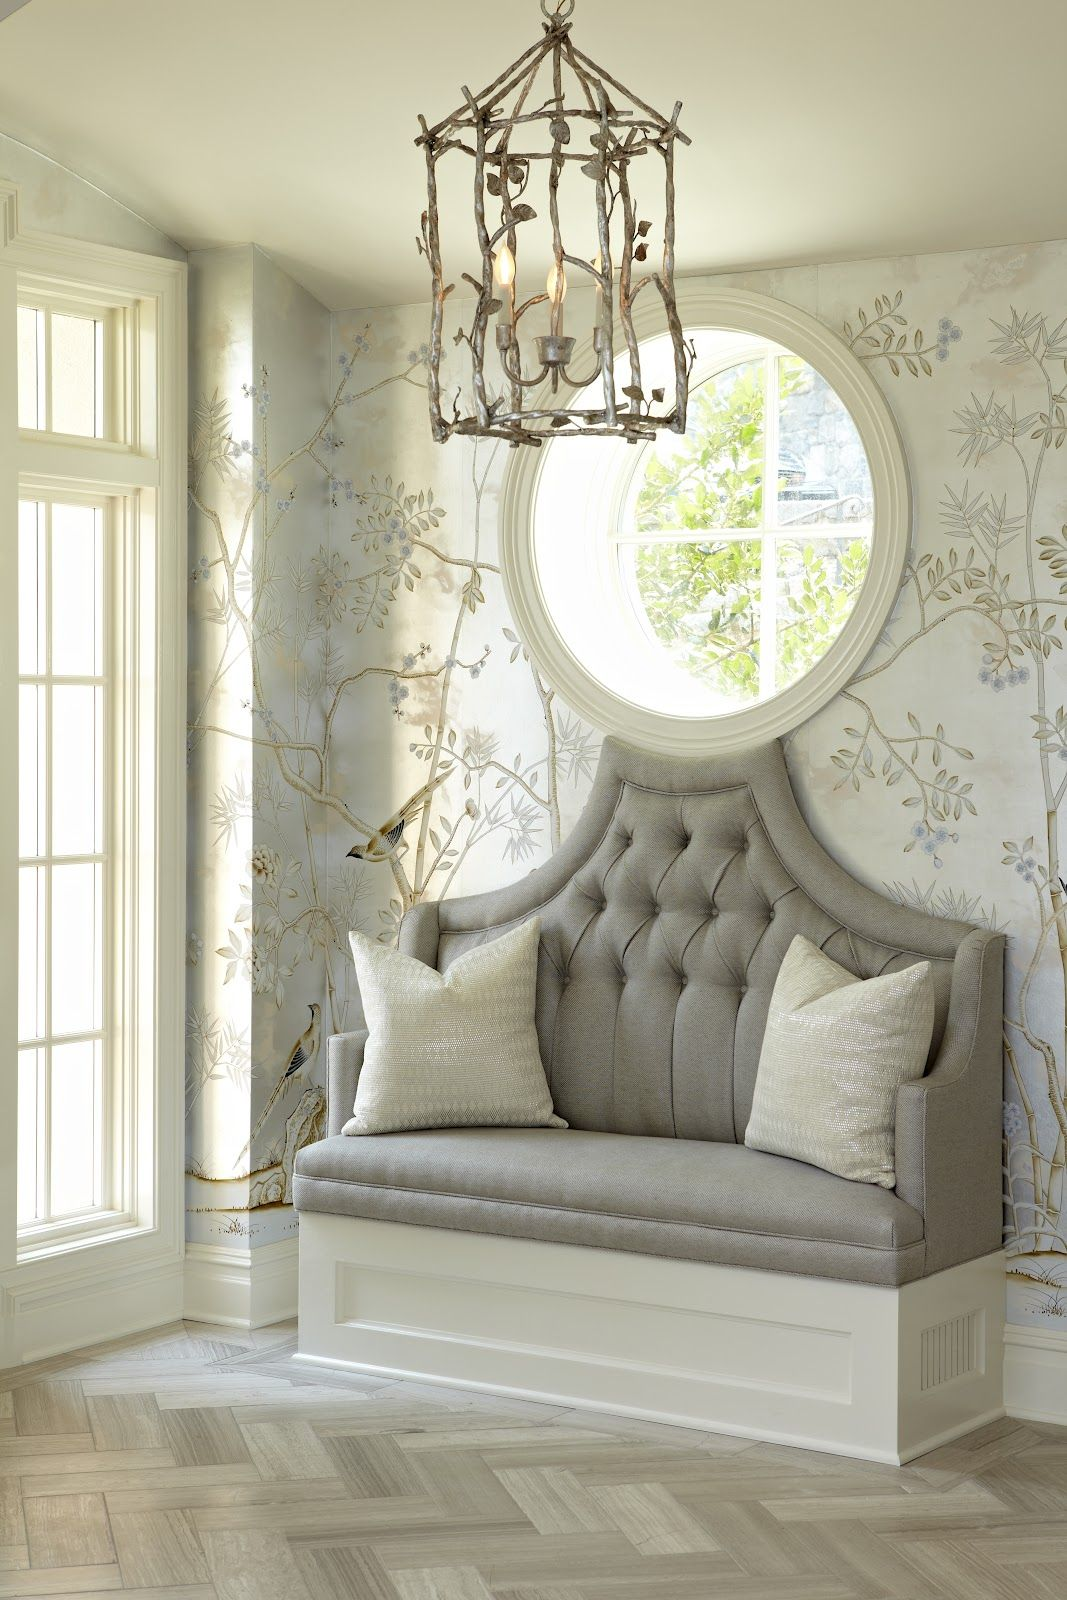 Window top decor  upholstered bench  love the round detail at the top joining the